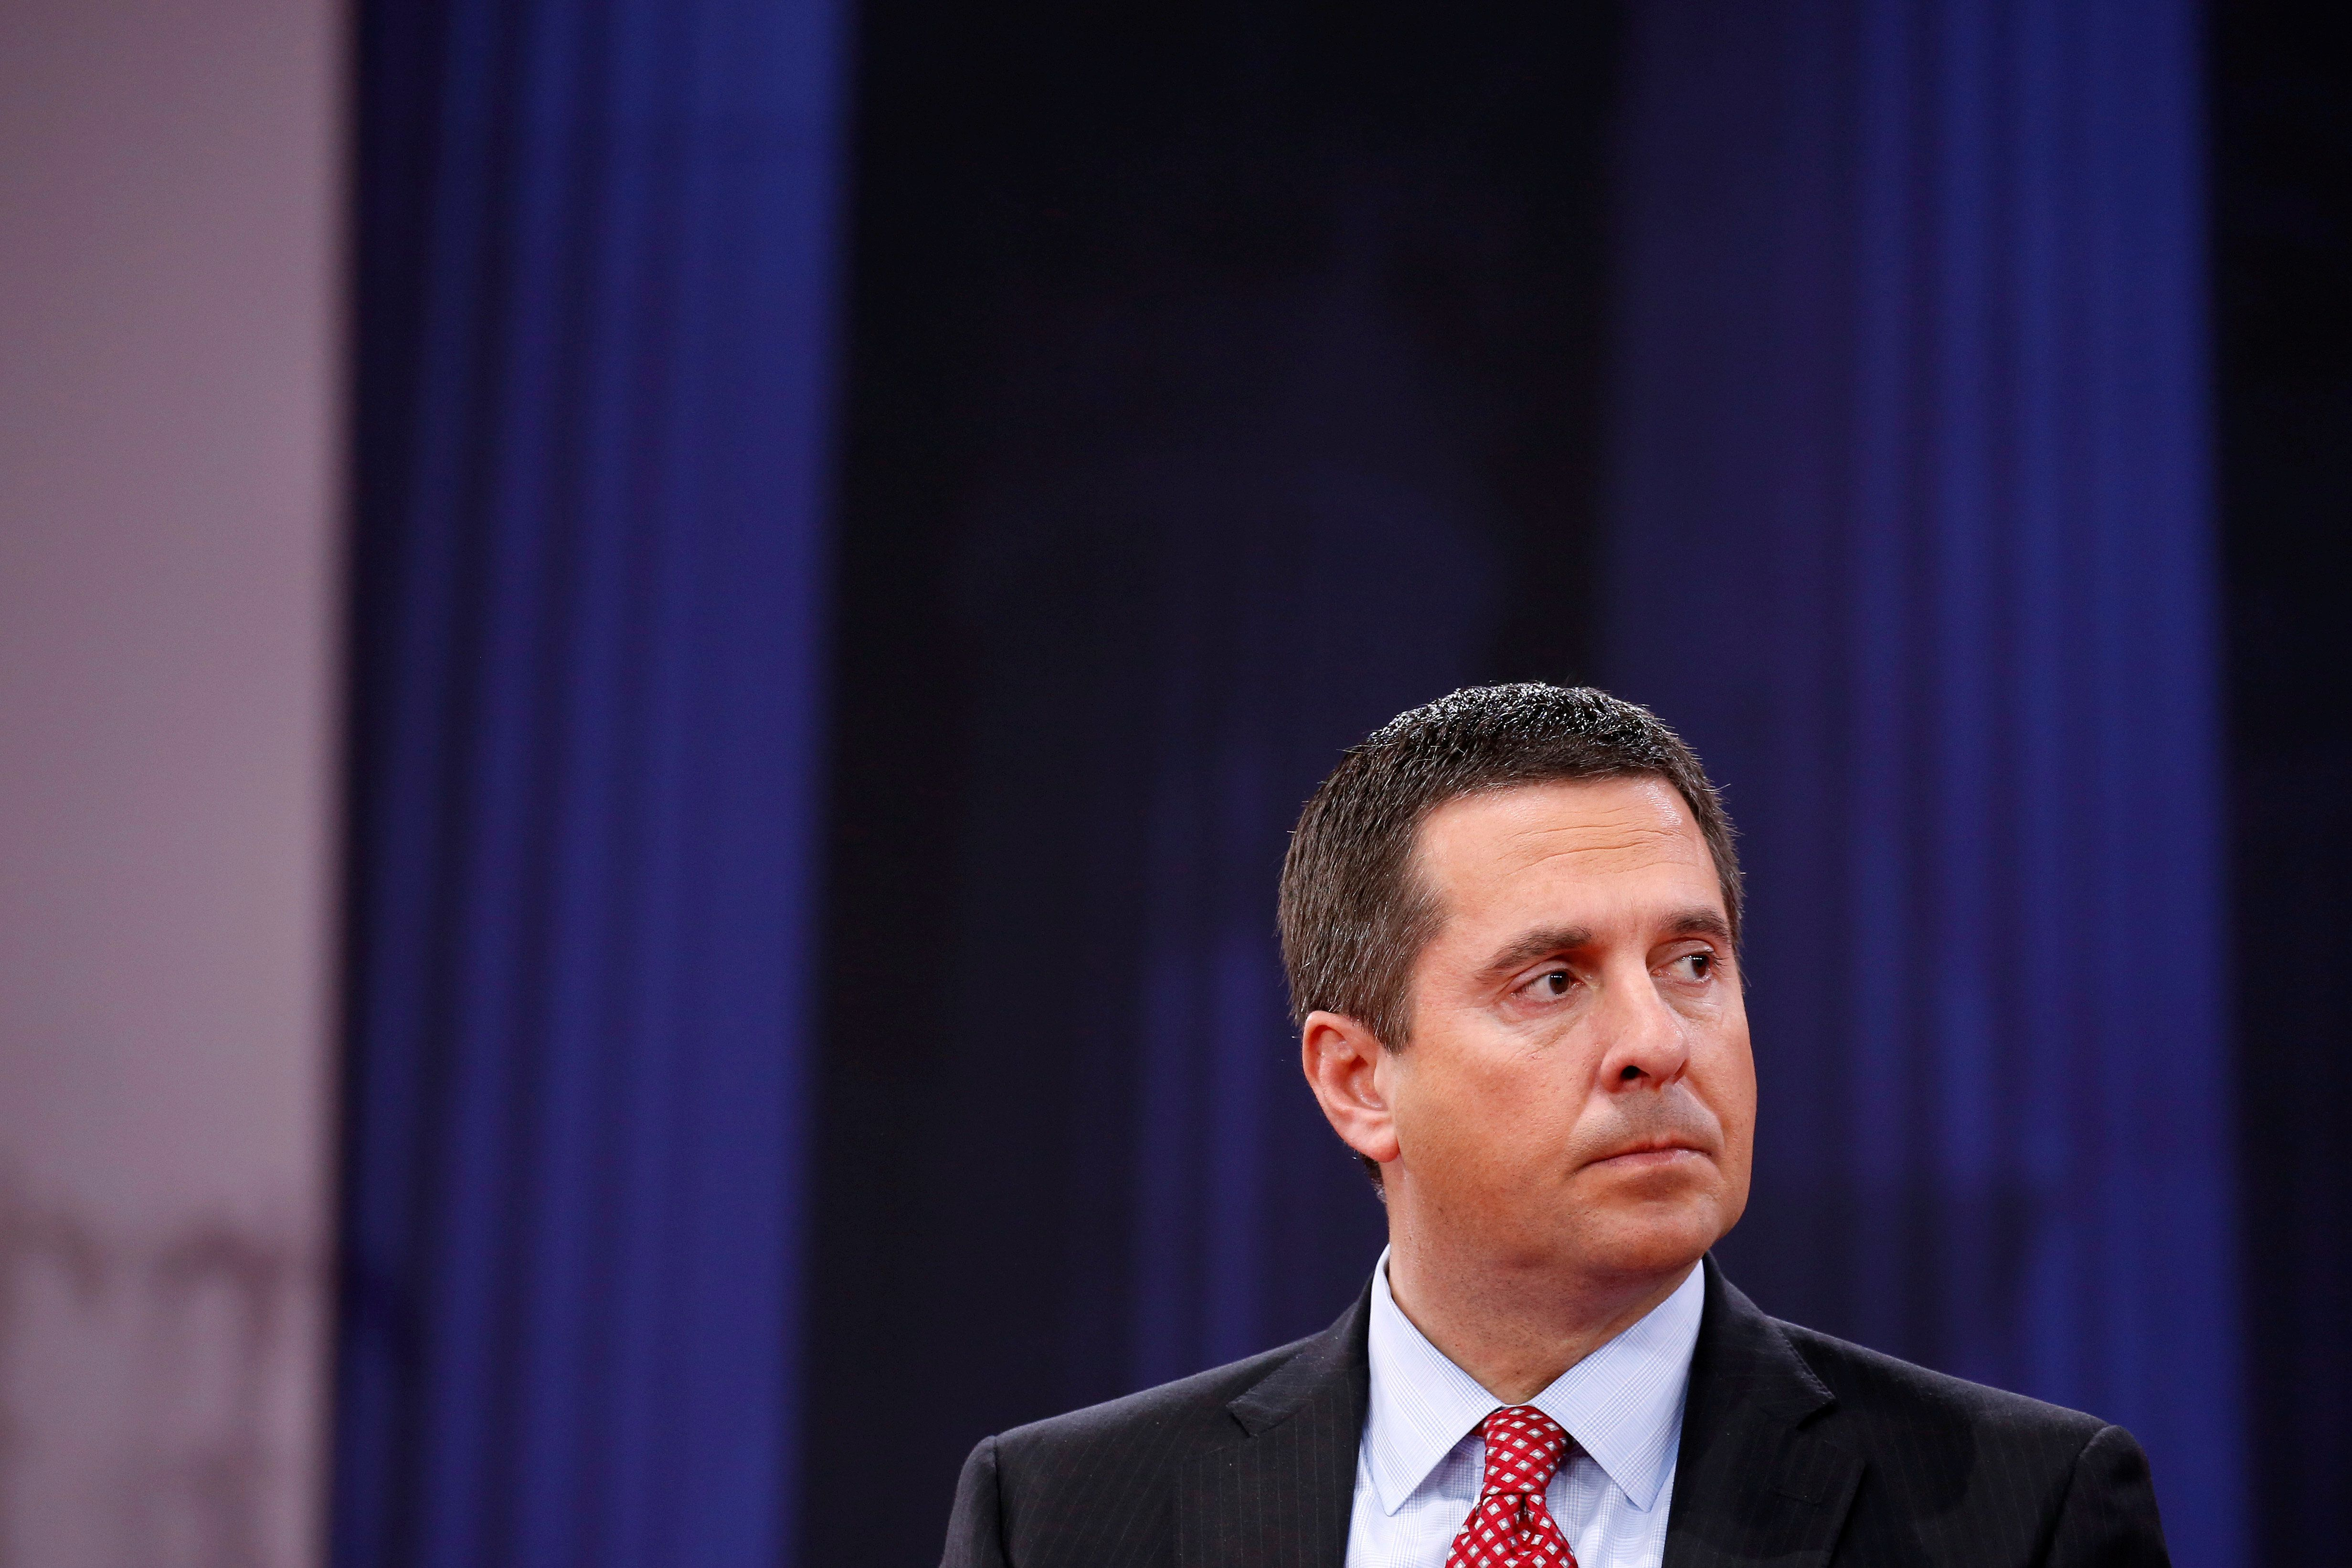 House Intelligence Committee Chairman Devin Nunes (R-CA) speaks at the Conservative Political Action Conference (CPAC) at National Harbor, Maryland, U.S., February 24, 2018.      REUTERS/Joshua Roberts